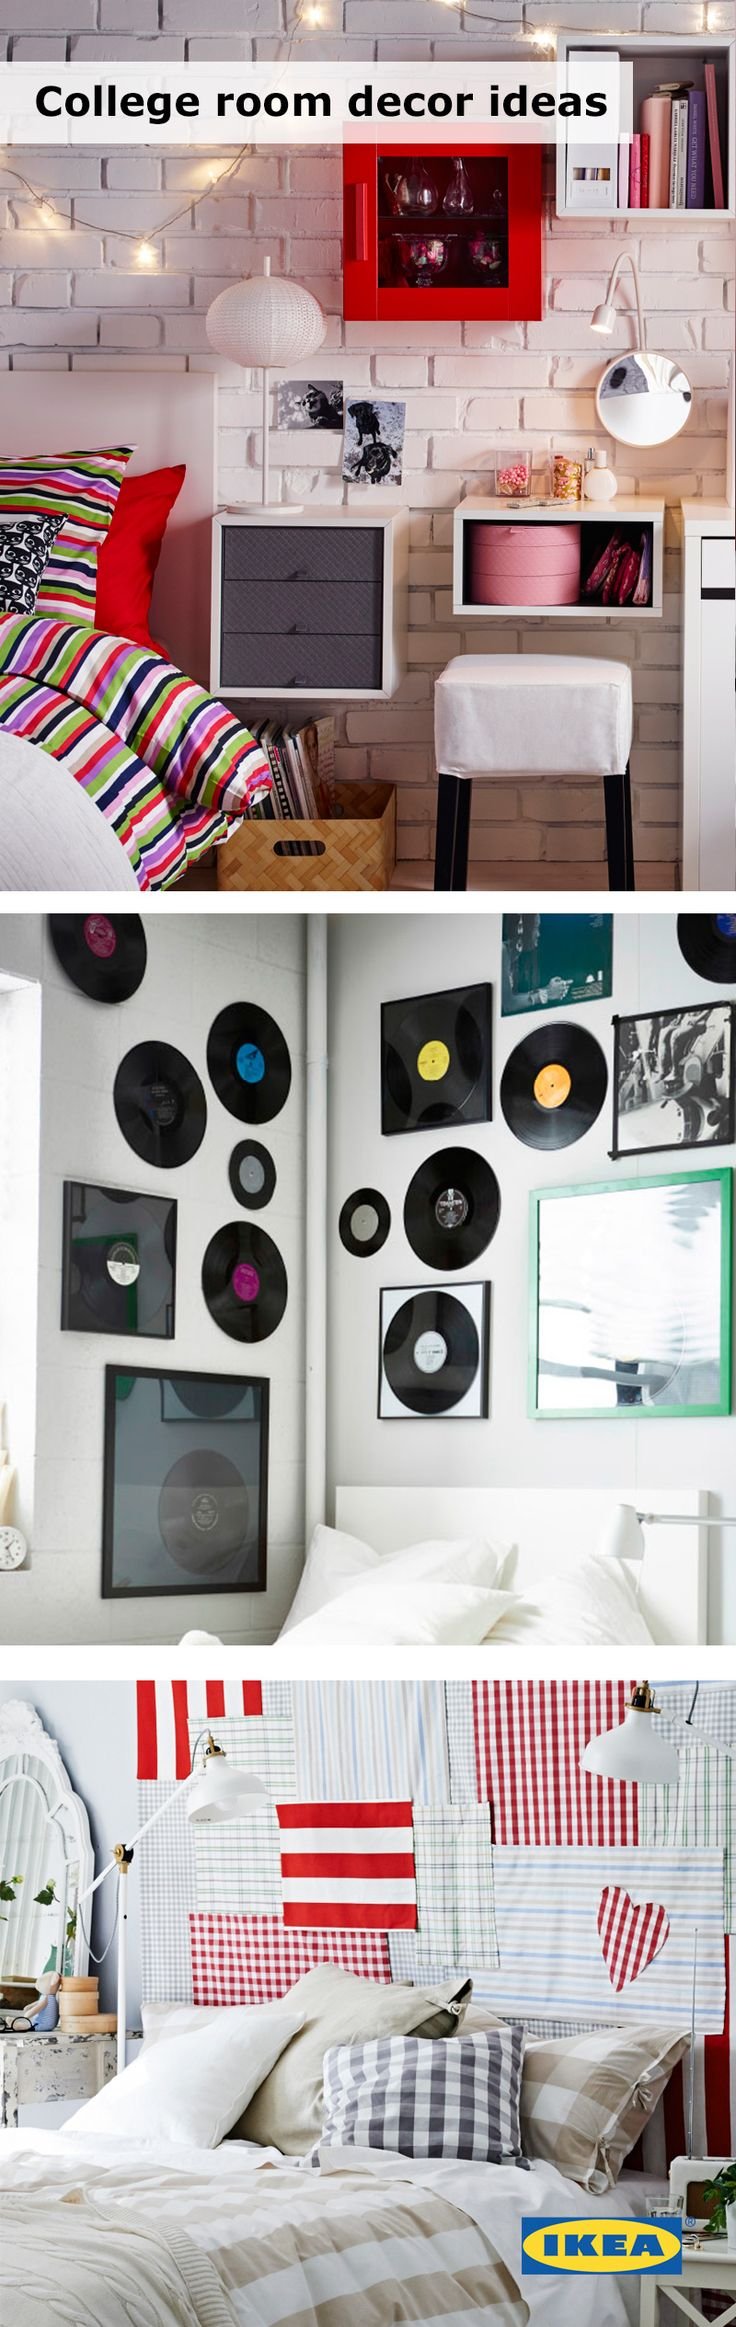 College room decorating 101: Make it yours! Whether you live in a dorm or off-campus, use textiles, lights or even records to decorate your space and make it feel like home! Click for more IKEA ideas to transform your bedroom or study space. #IKEAStudyInStyle